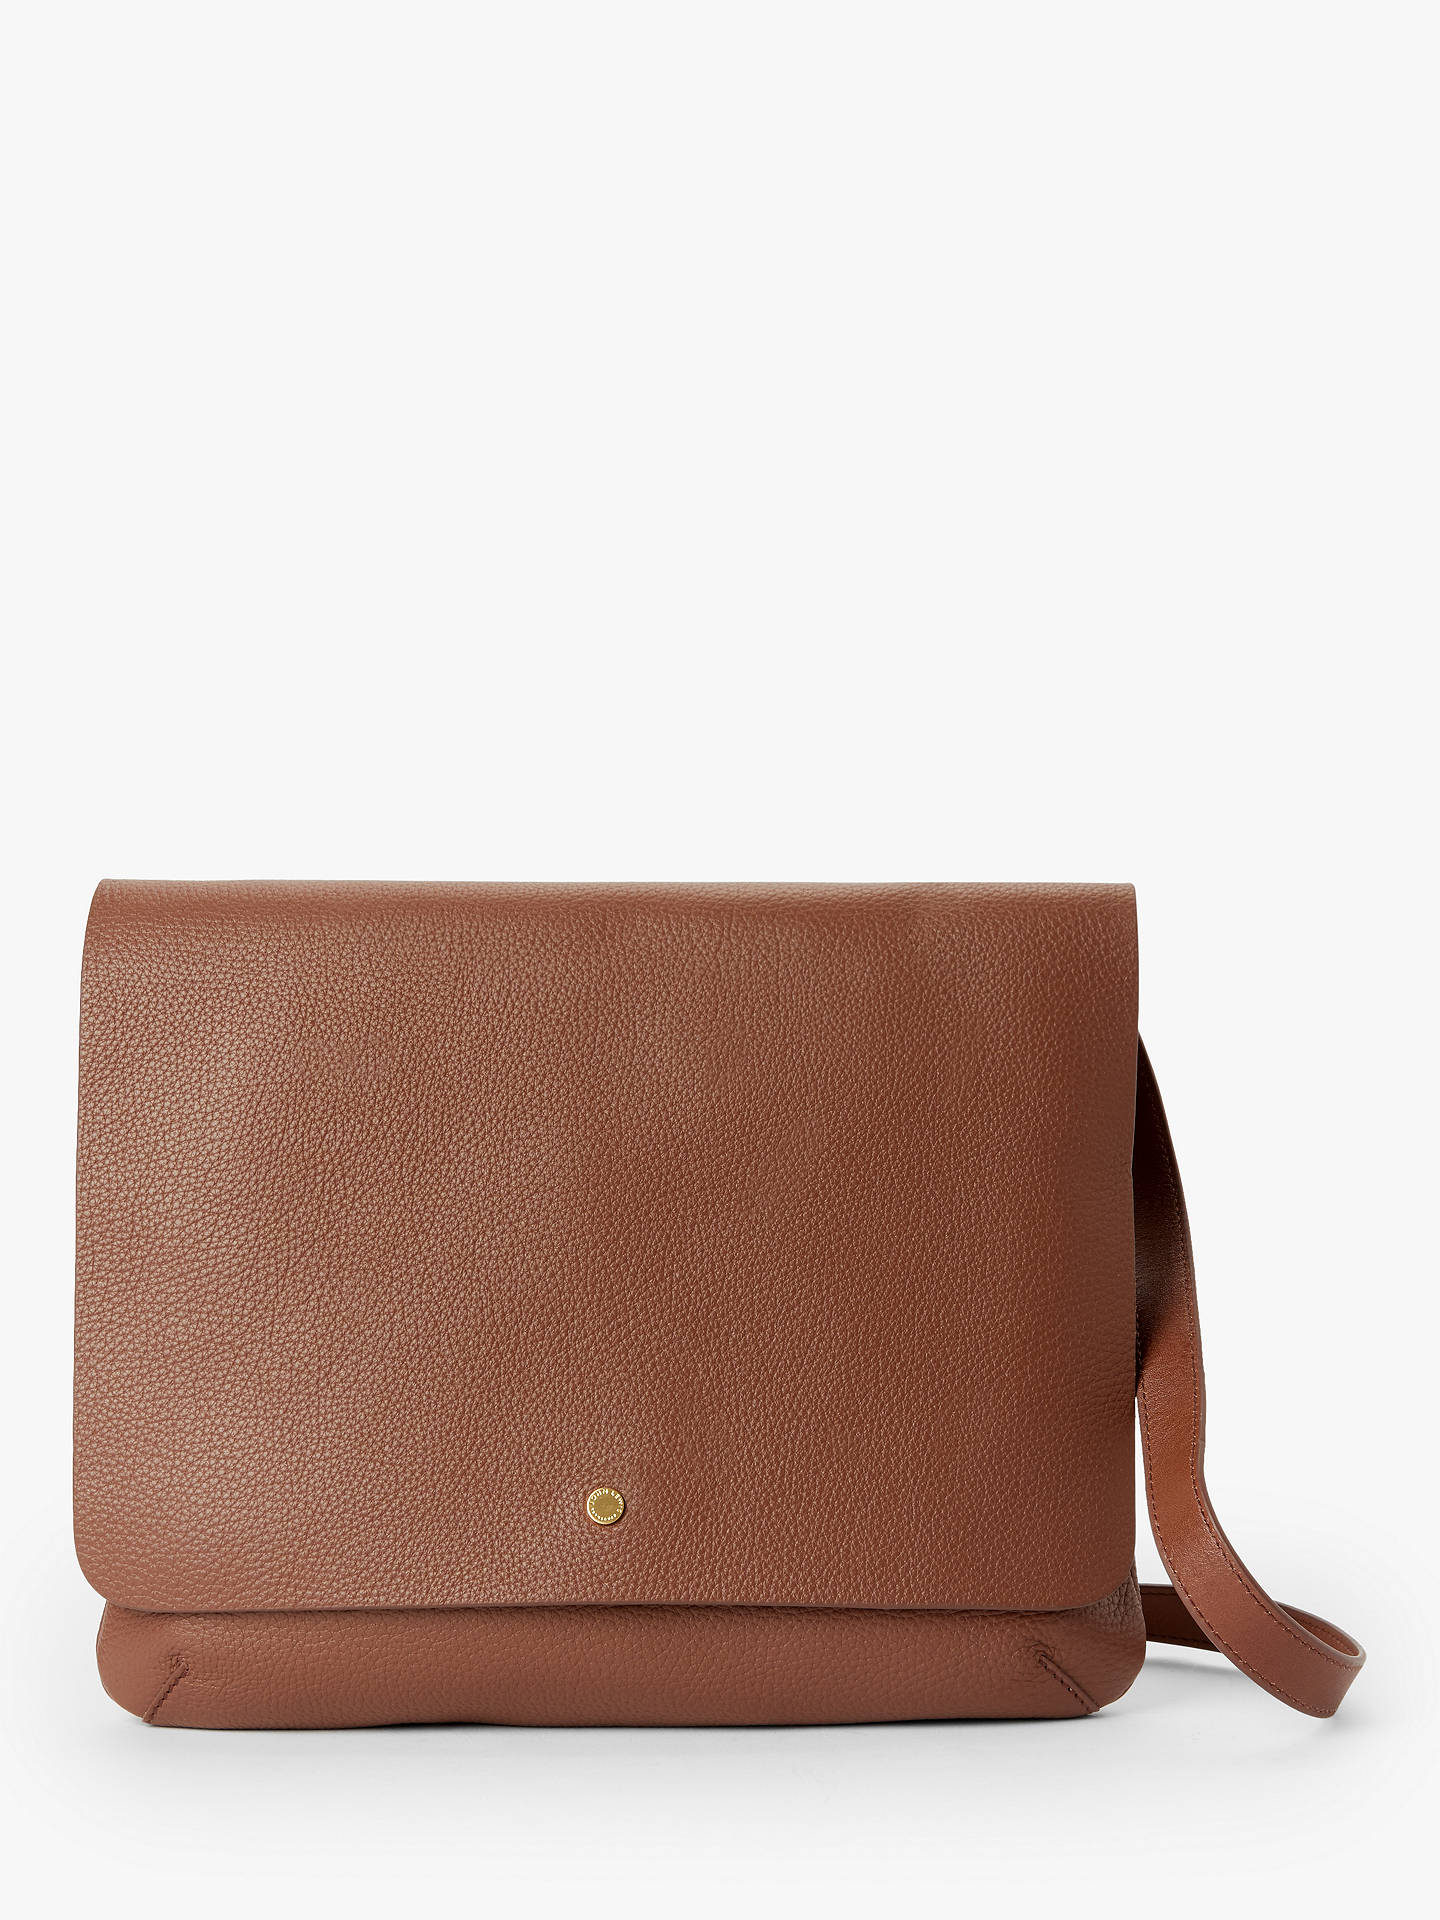 Buy John Lewis & Partners Mae Leather Medium Cross Body Bag, Tan Online at johnlewis.com